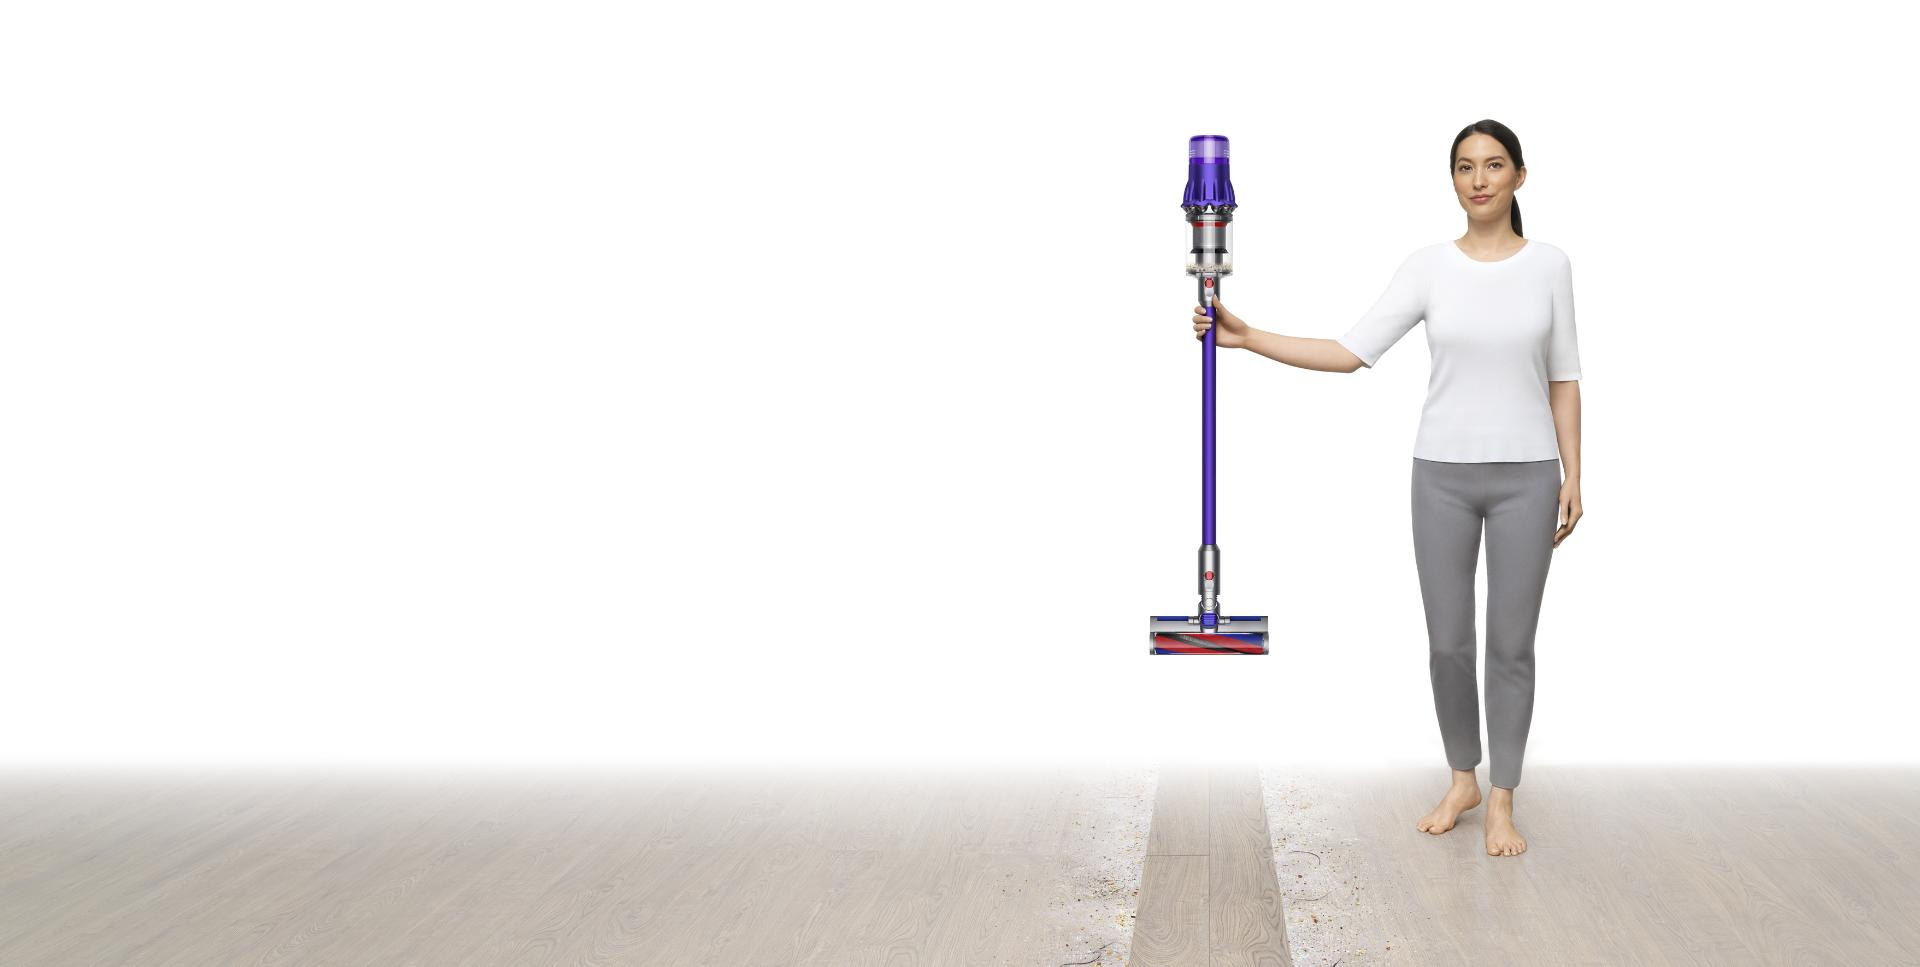 Image of a woman holding a Dyson Digital Slim™ vacuum.